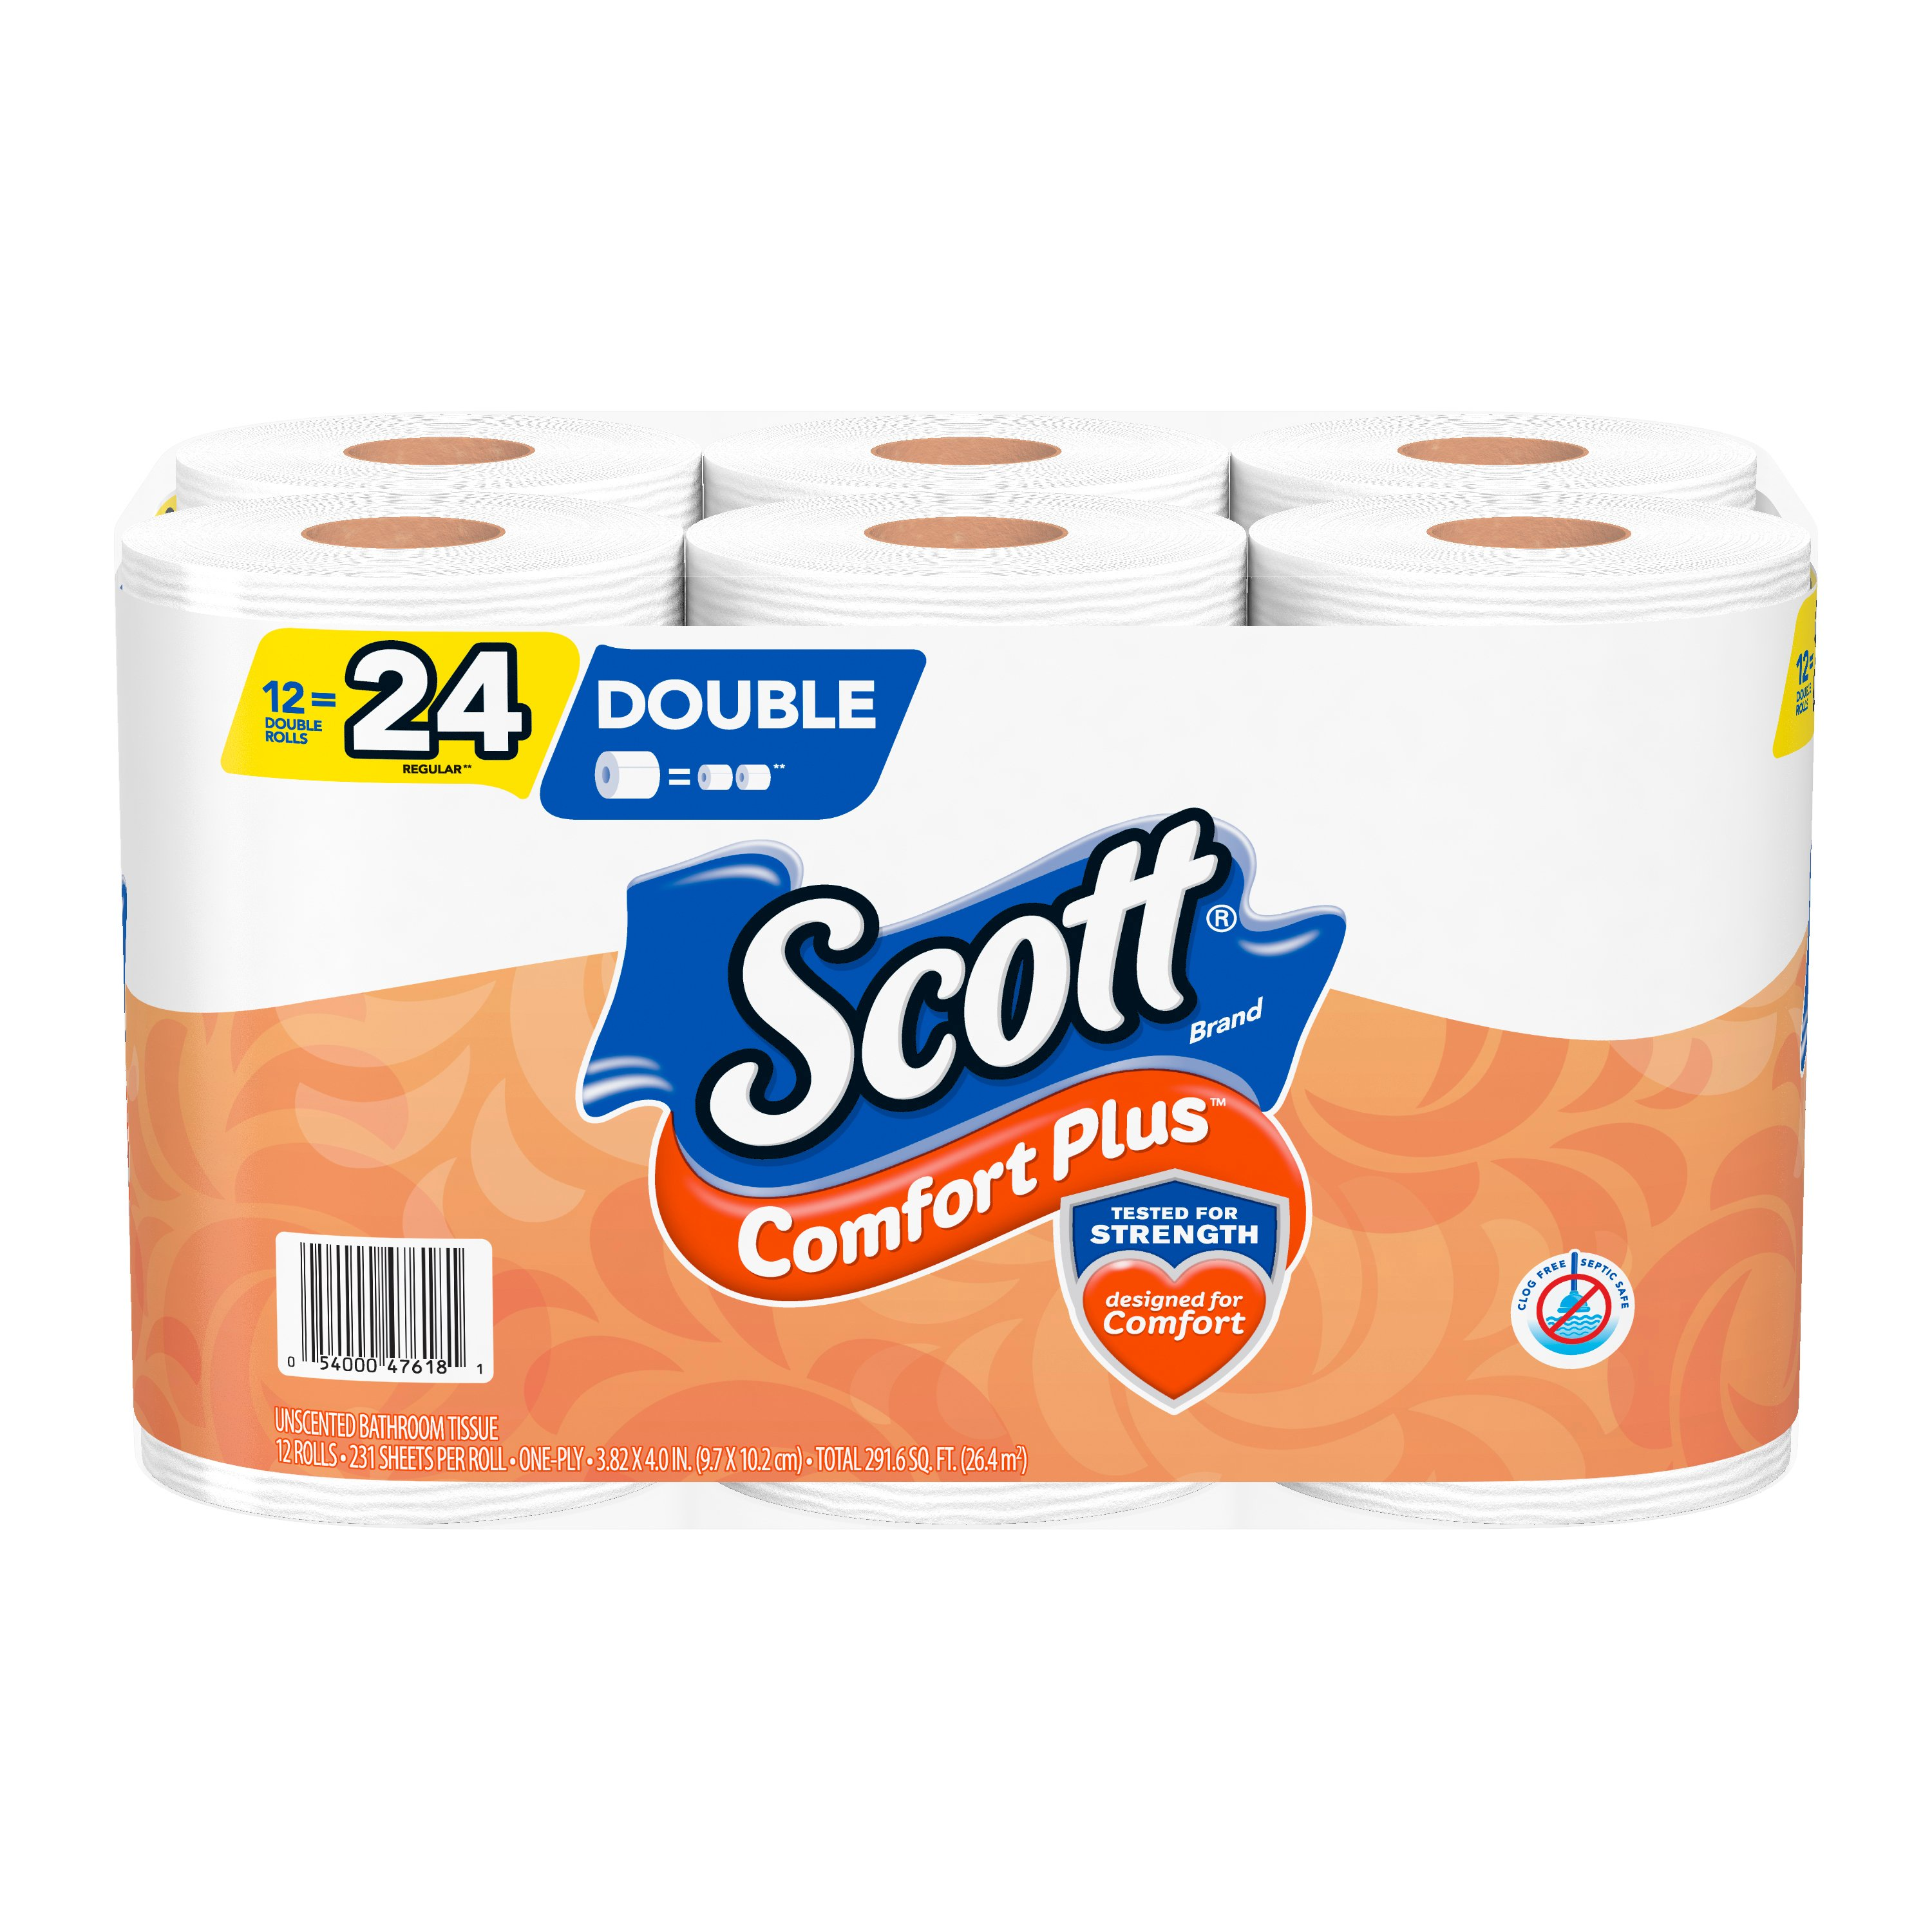 Scott Extra Soft Bath Tissue Double Rolls. Shop Toilet Paper   Grocery Stockup at HEB